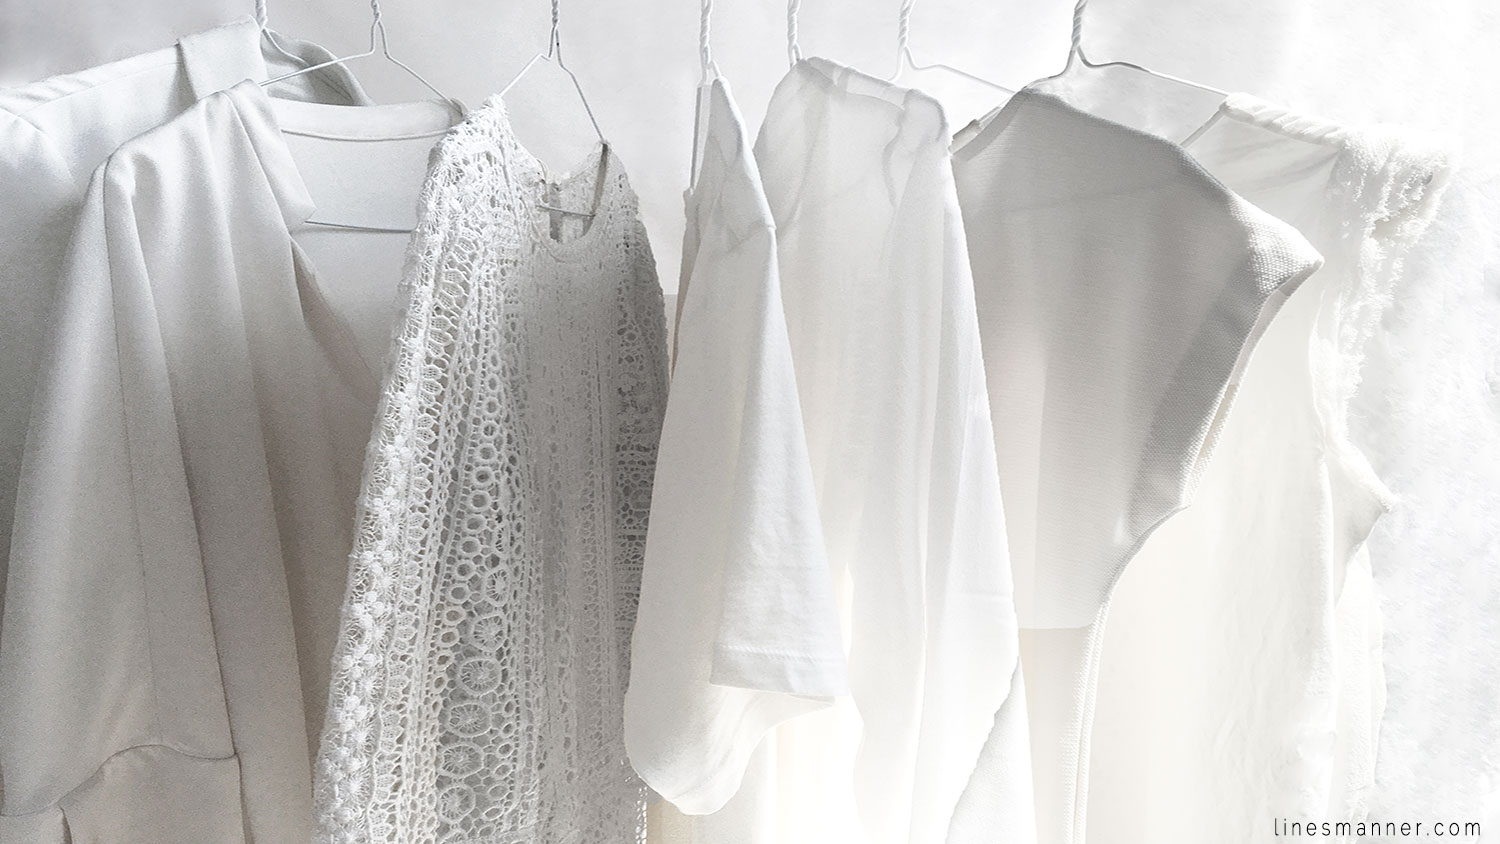 Lines-Manner-Immaculate-Whiteout-White-Off_White-Design-Structure-Clean-Fresh-Sleek-Fashion-Minimal-Wardrobe-Details-Pure-Simplicity-1